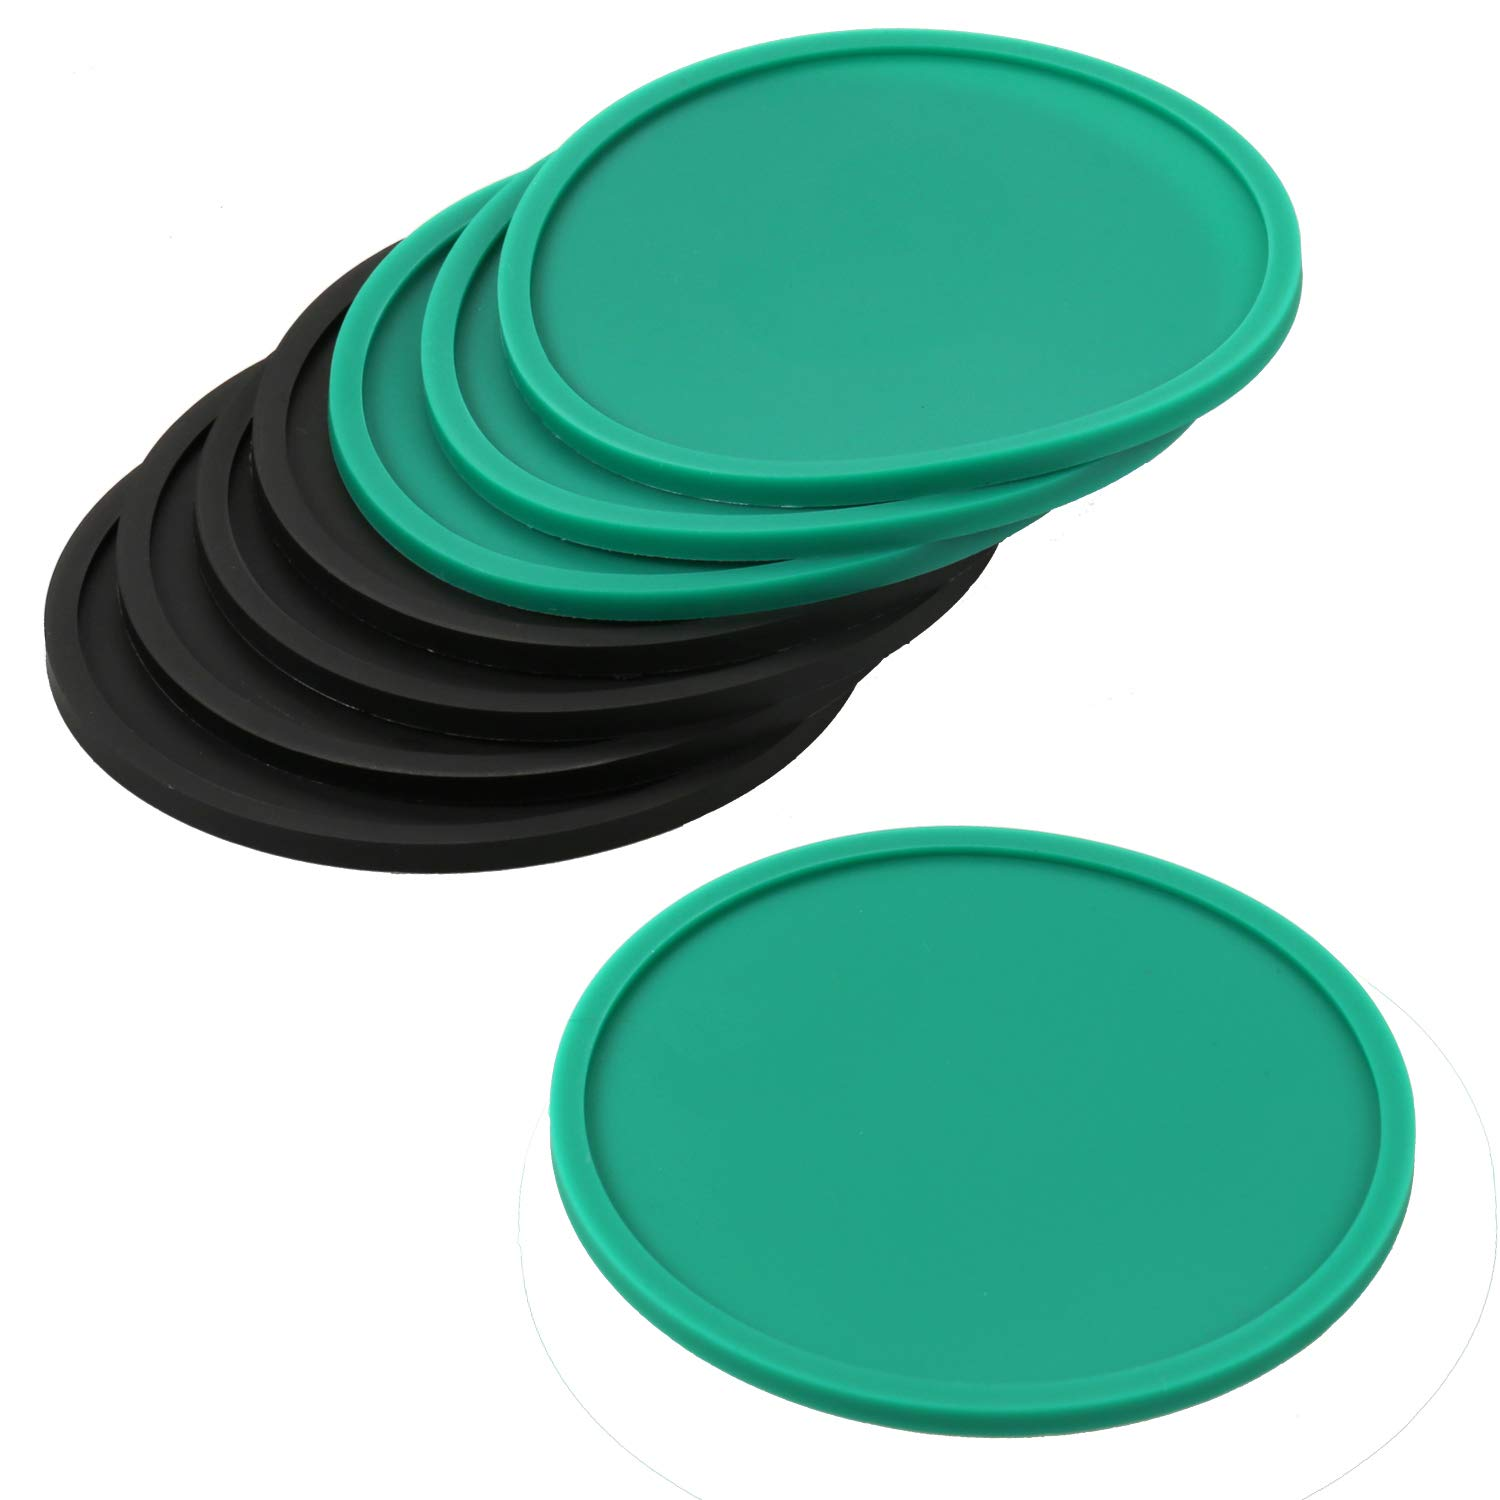 Silicone Coasters for Drinks,4'' Pack of 8 Round Non-slip Soft Rubber Cup Mat Pad (4pcs Black + 4pcs Green)